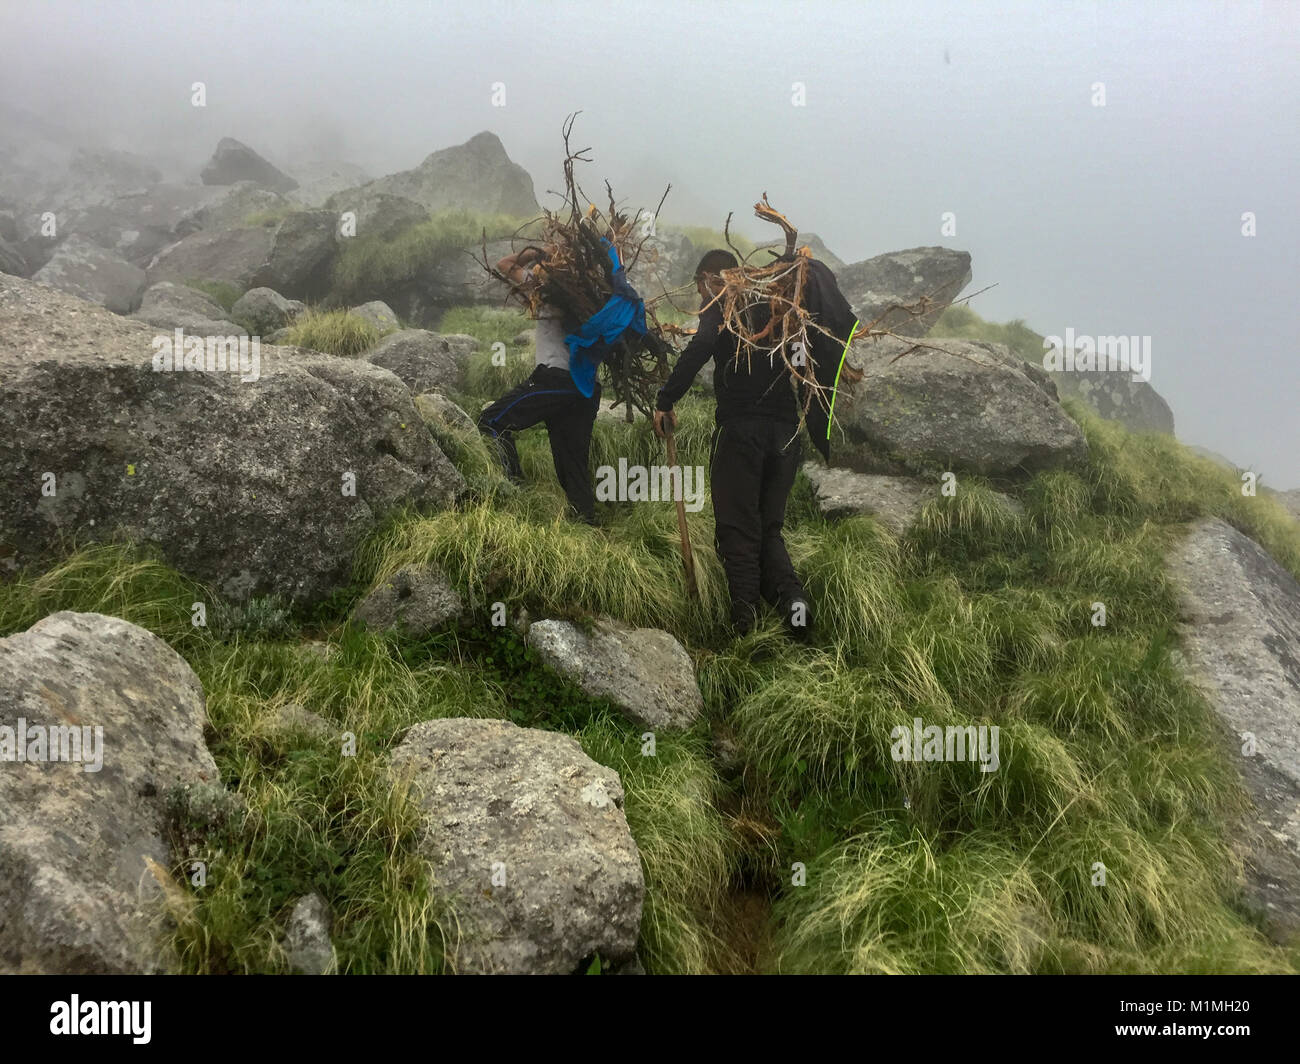 Collecting woods for camping in Himalayas during the trek - Stock Image